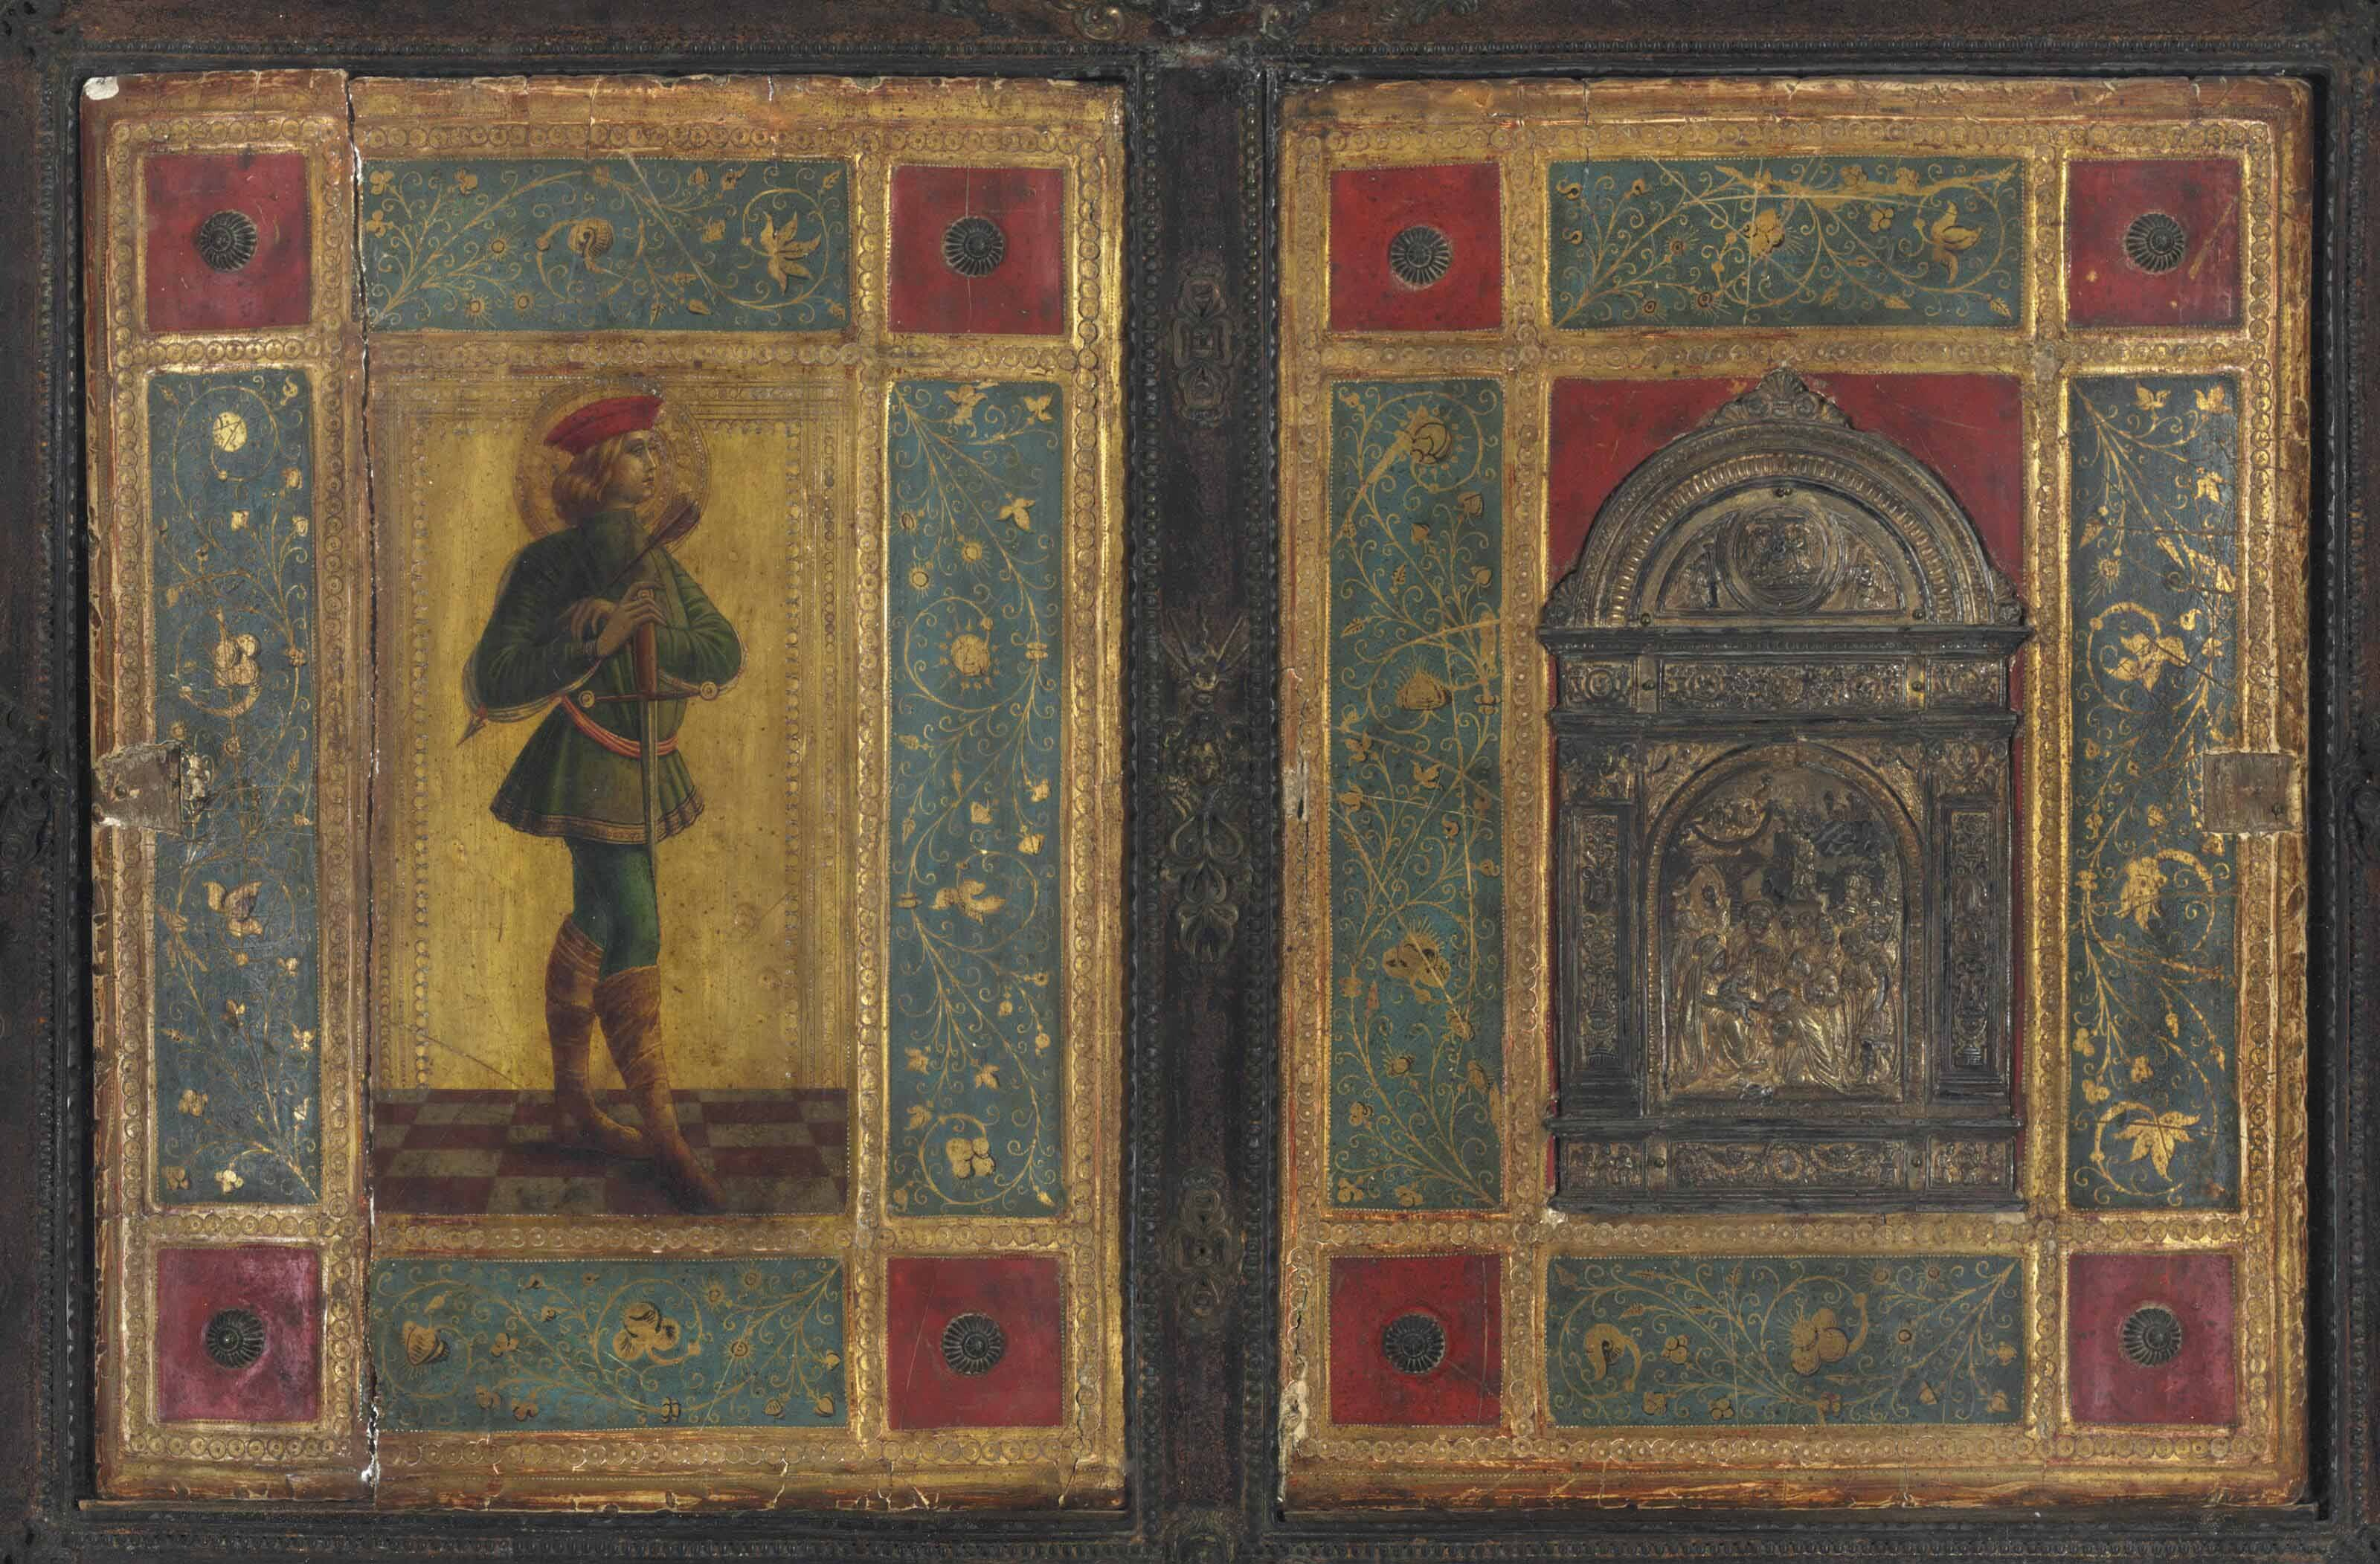 Two panels from one of Icilio Joni's forged Sienese bindings.